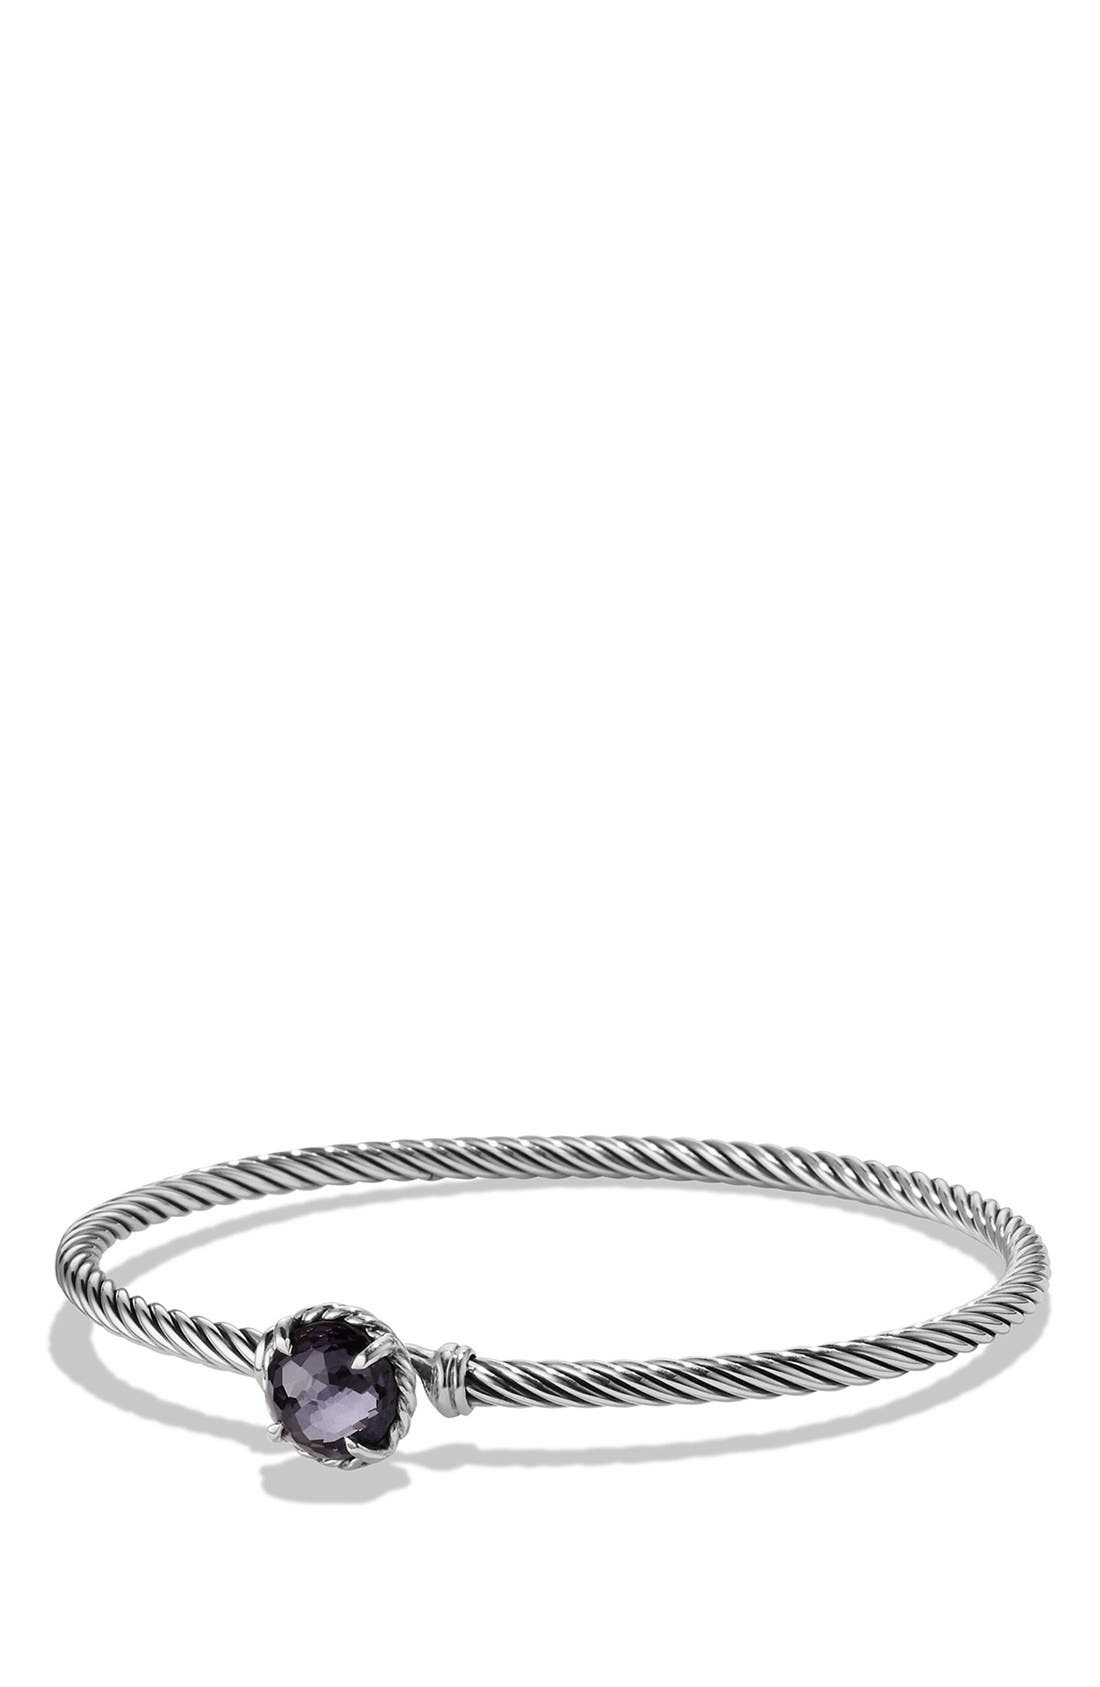 DAVID YURMAN Color Classics Bangle Bracelet